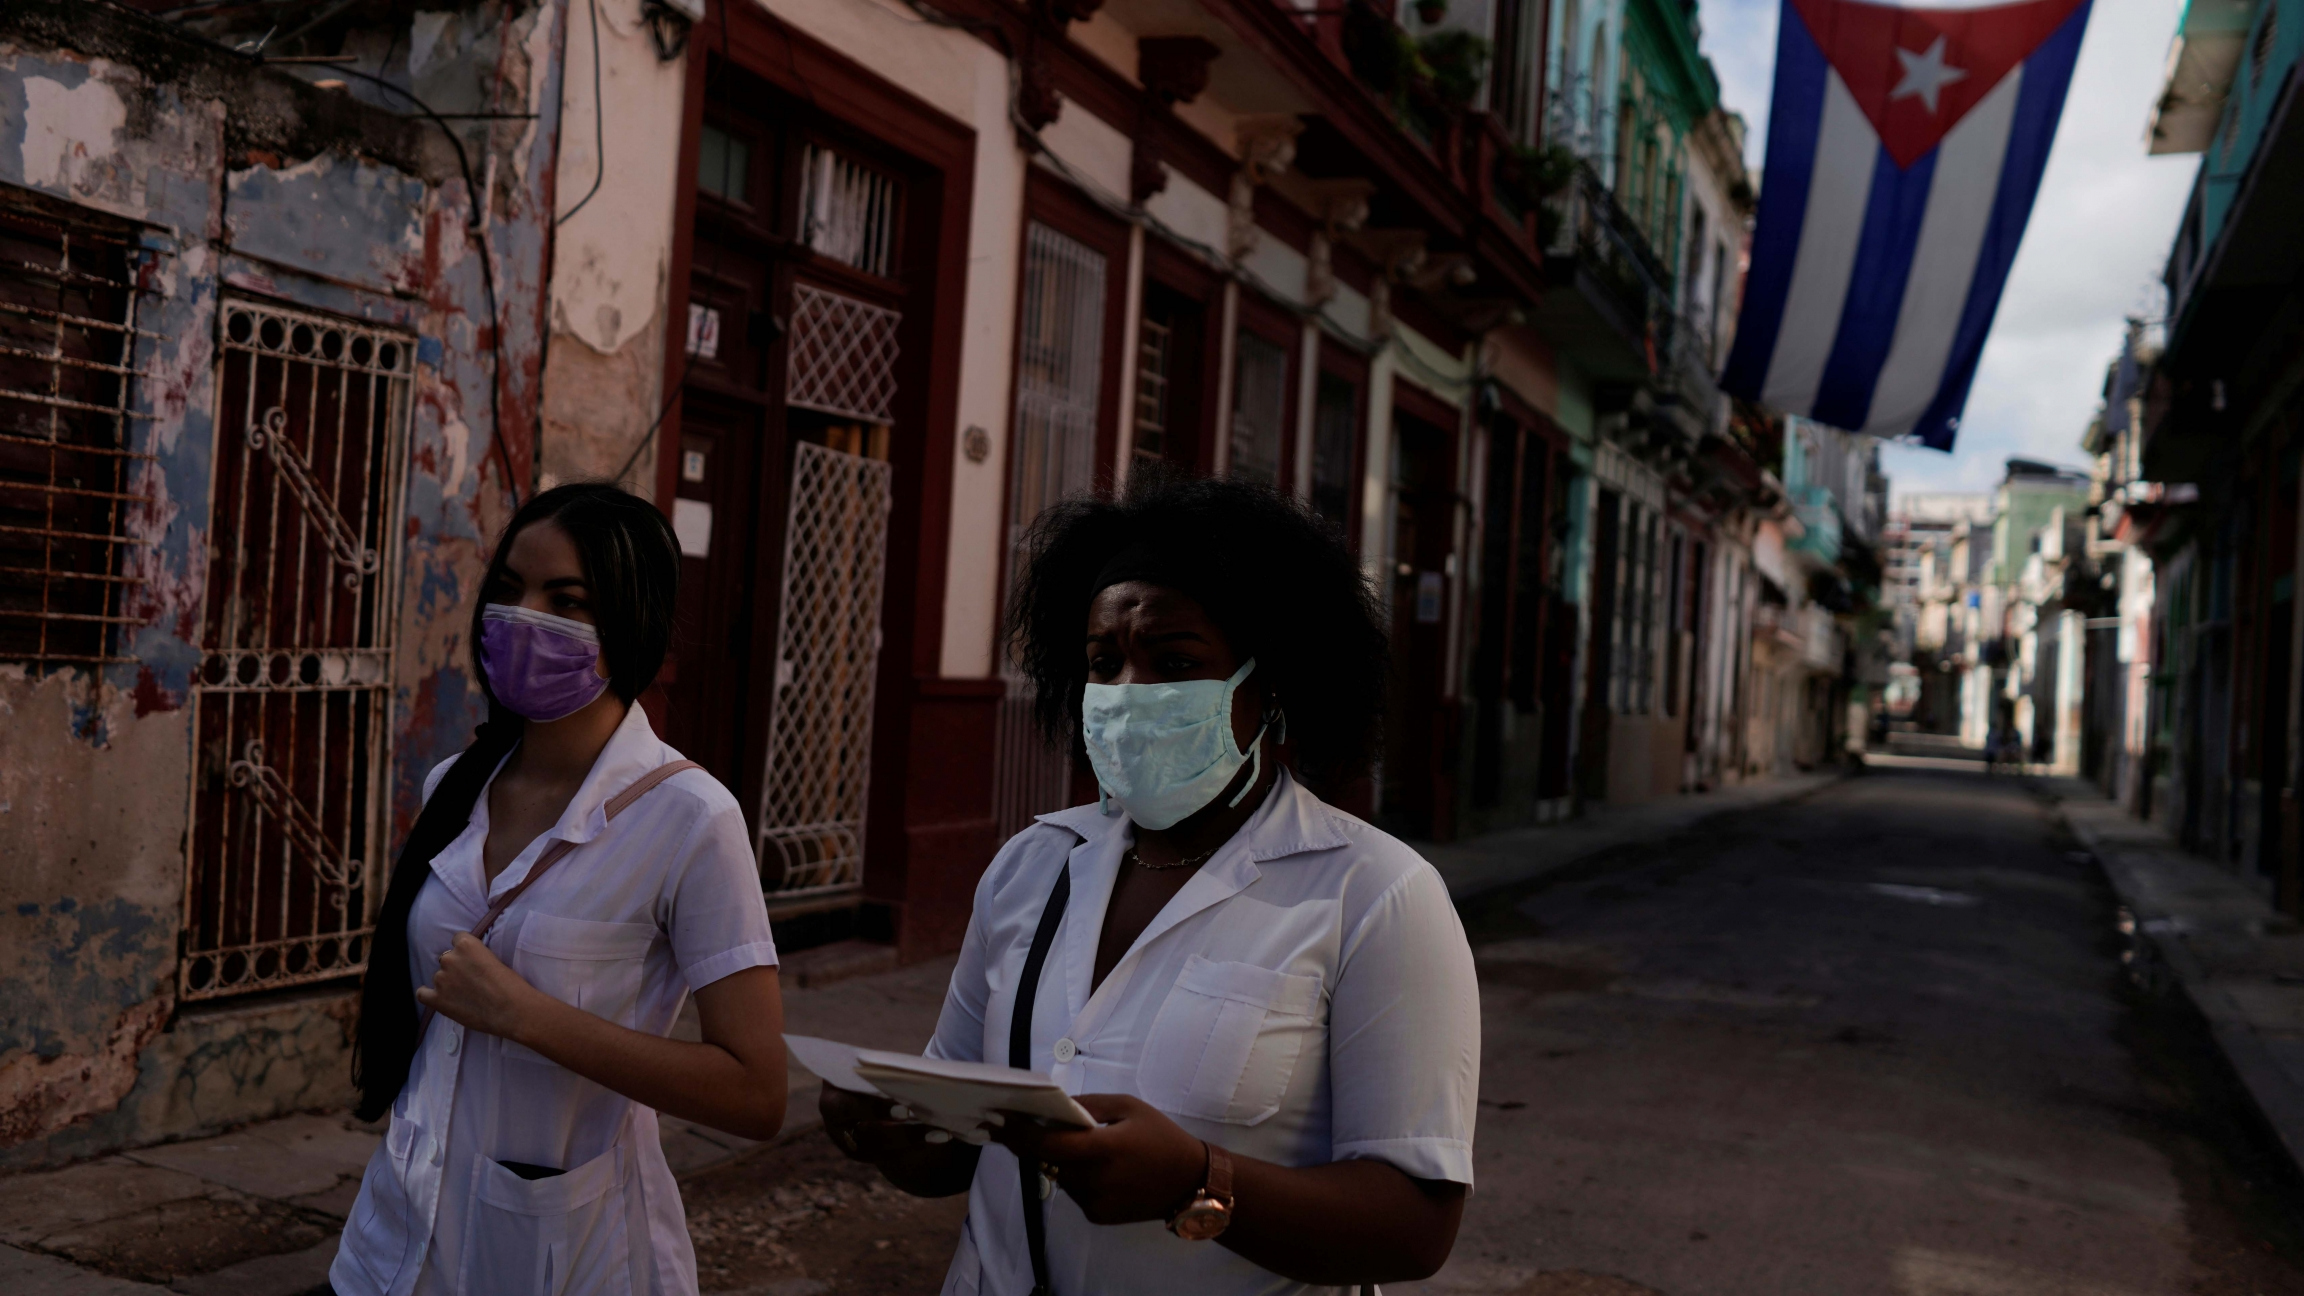 Medical students walk past a Cuban flag as they check door to door for people with symptoms amid concerns about the spread of the coronavirus disease (COVID-19), in downtown Havana, Cuba, May 12, 2020.